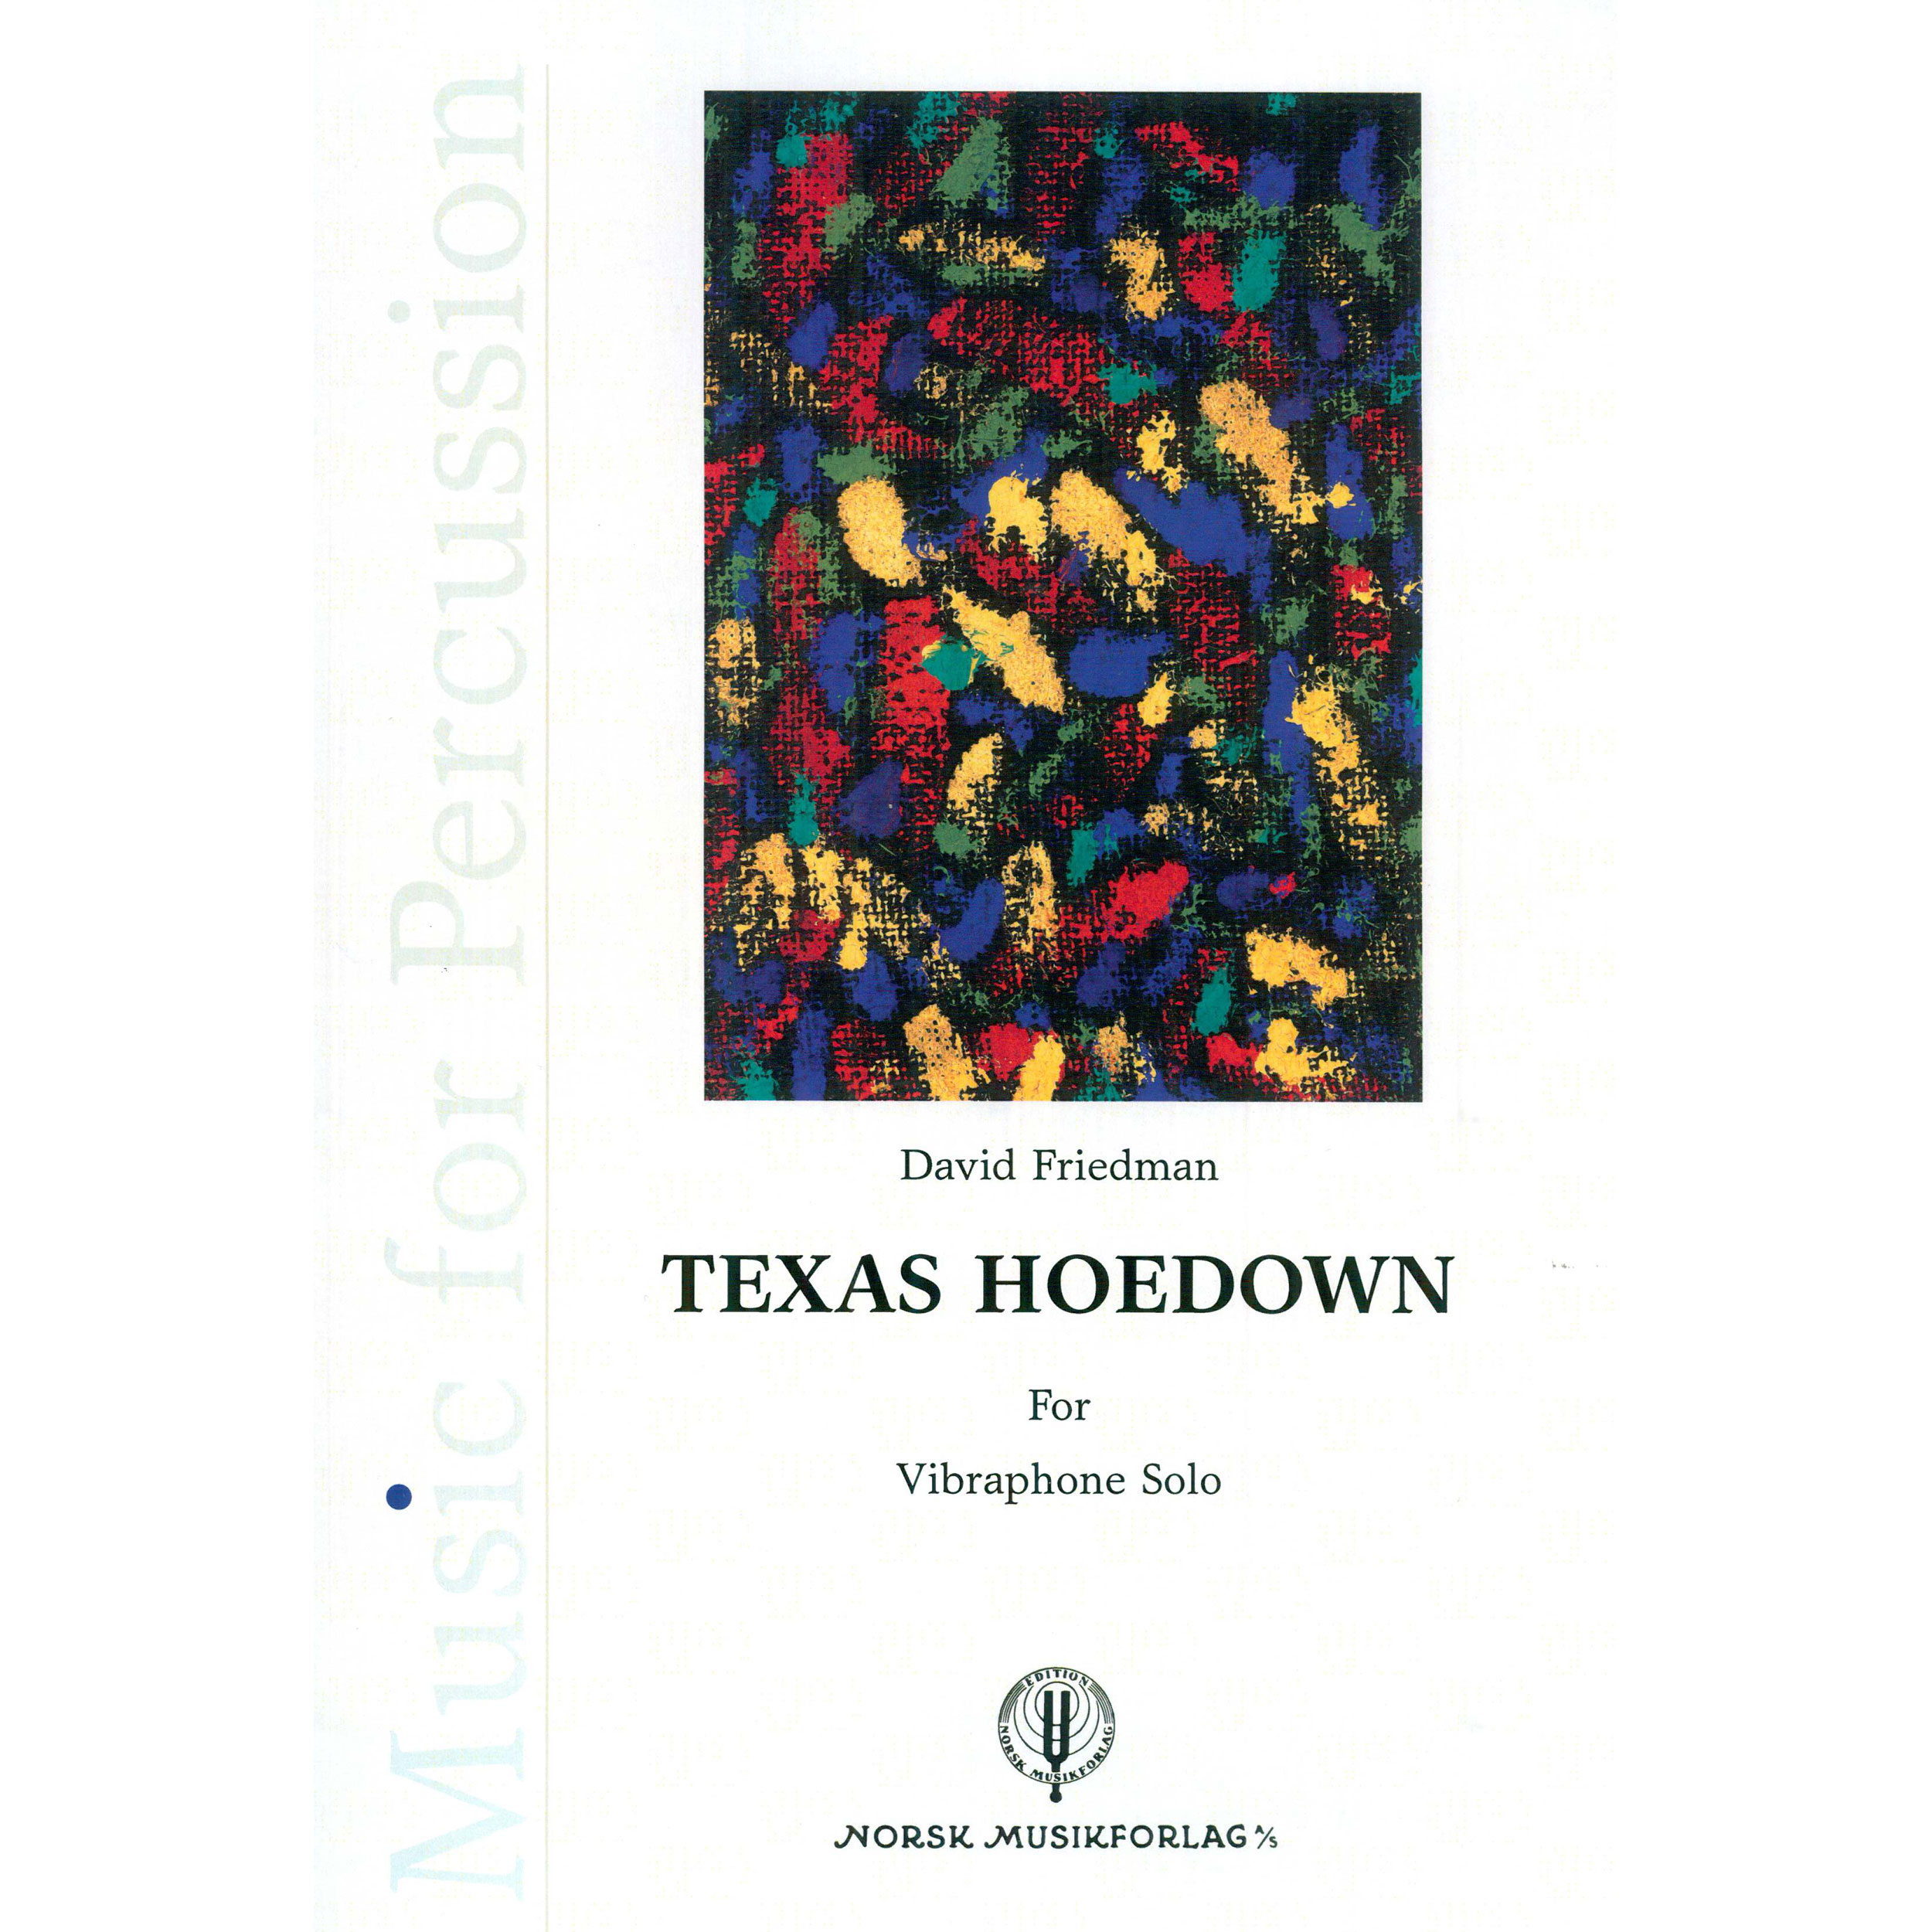 Texas Hoedown by David Friedman